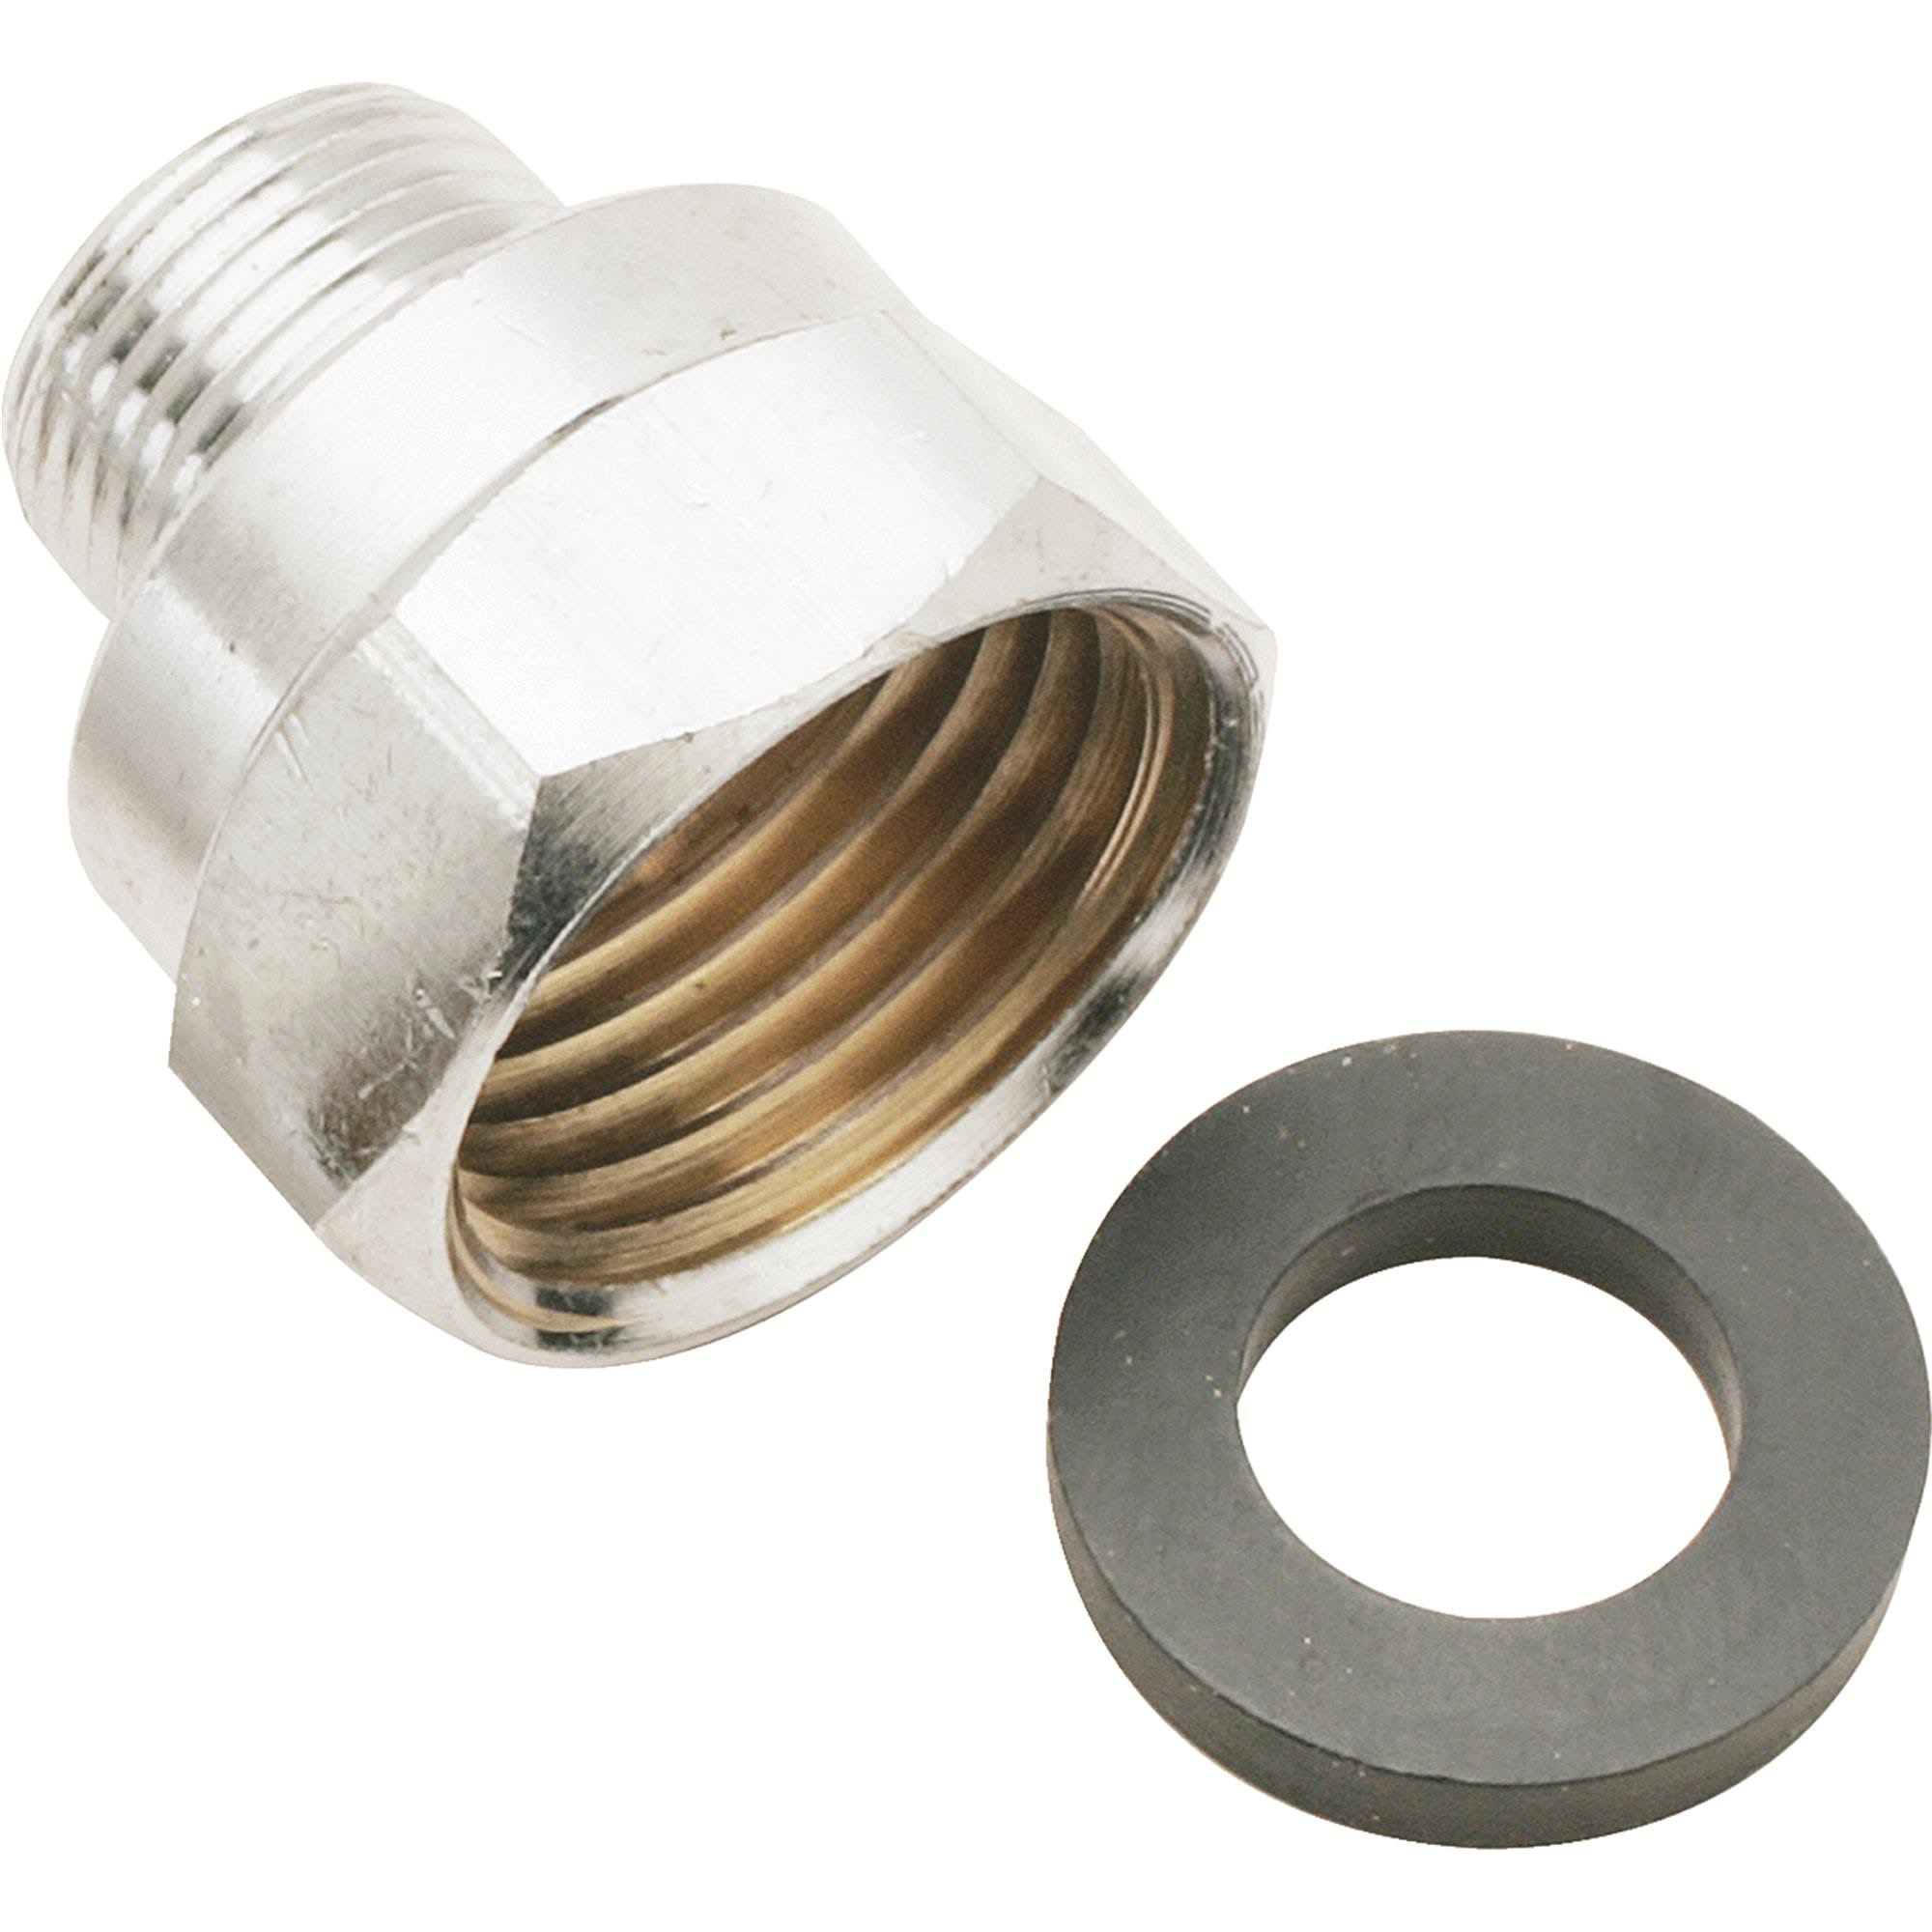 Plumb Pak Keeney 455910 Do it Water Supply Adapter